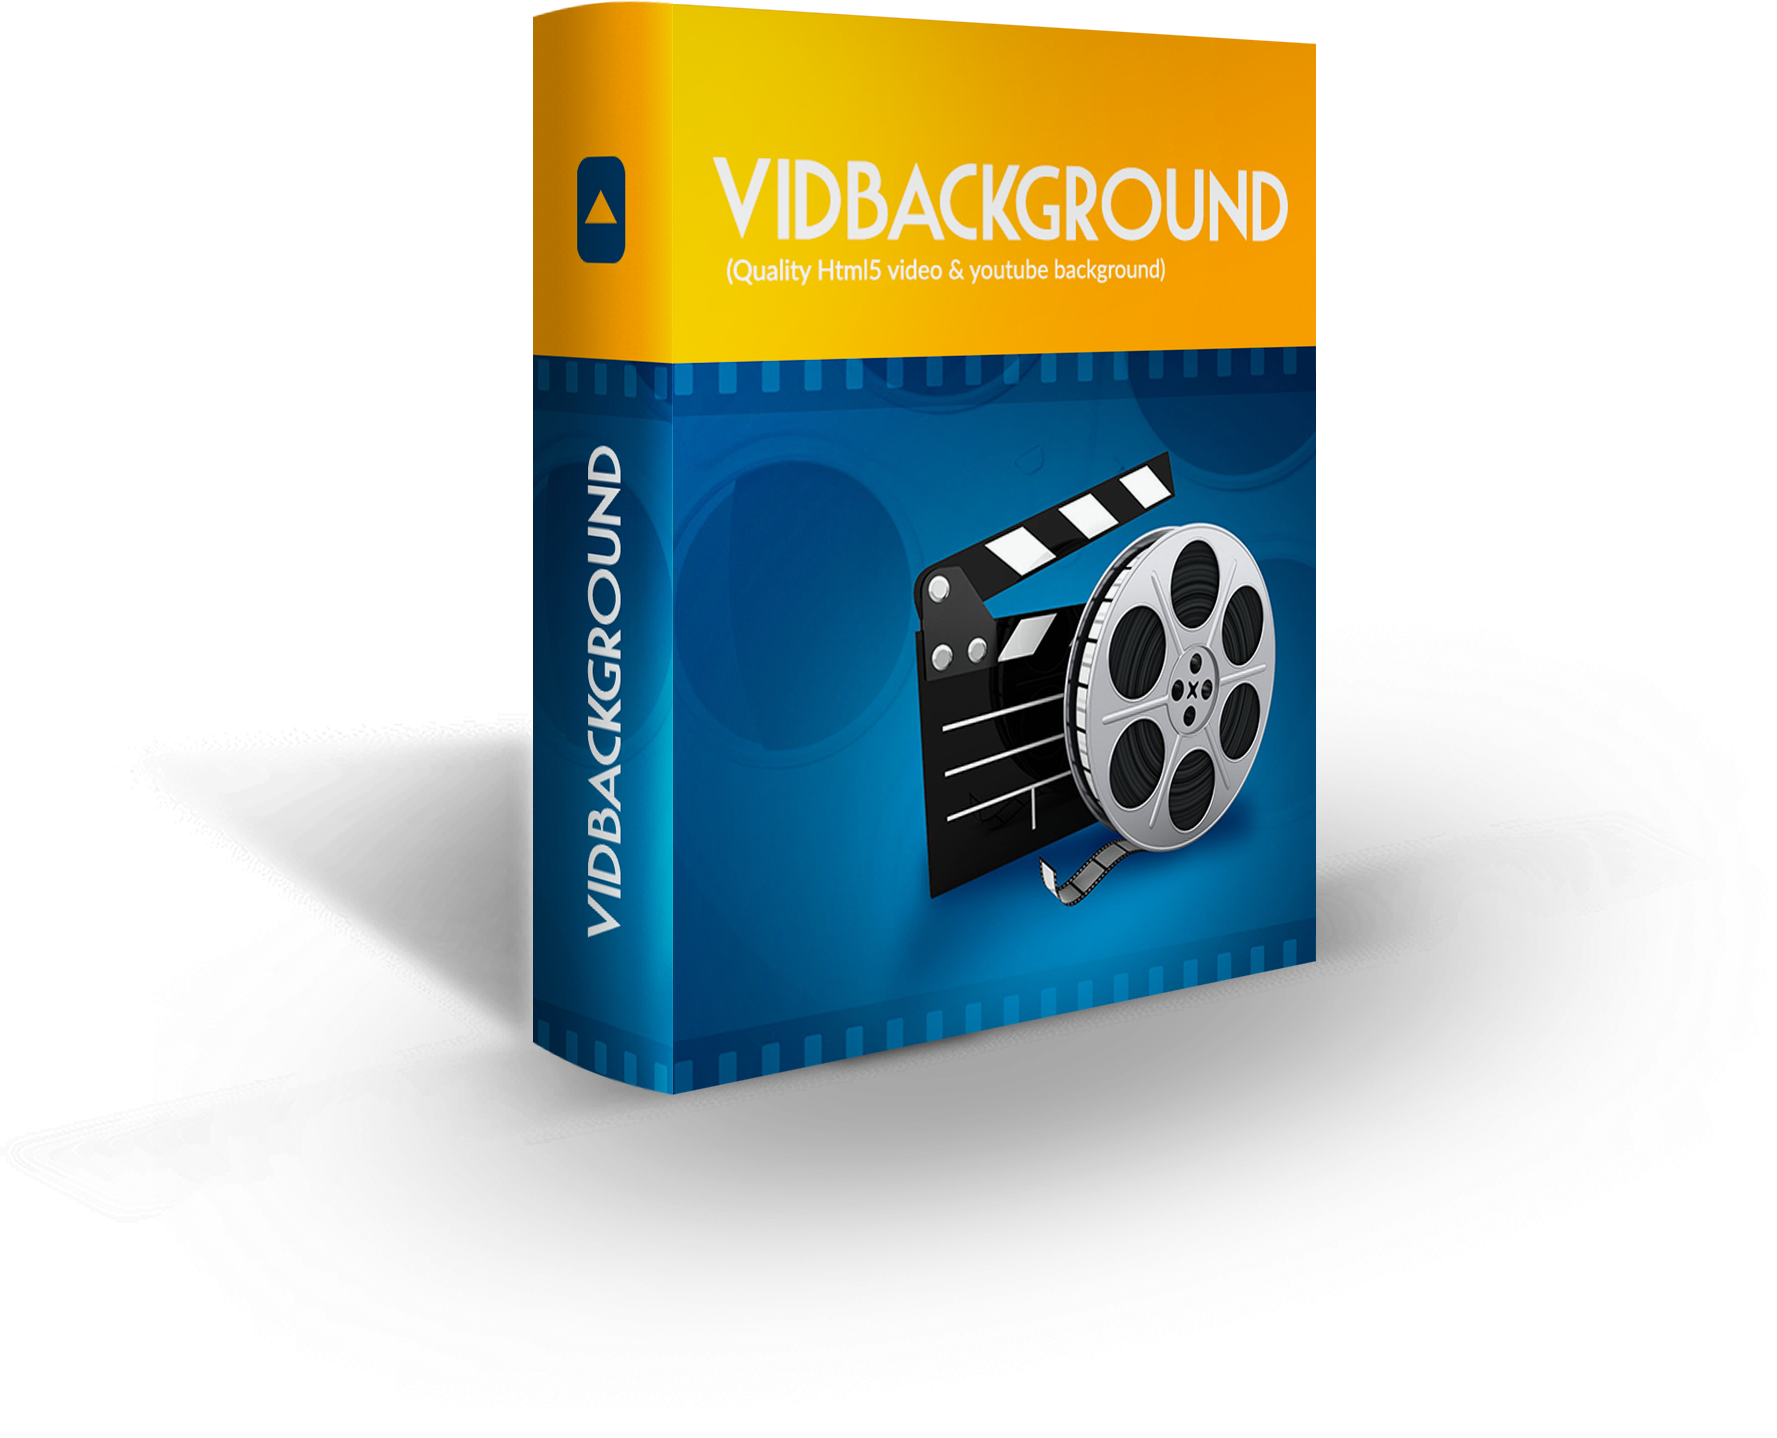 Vidbackground (Quality Html5 video & youtube background)